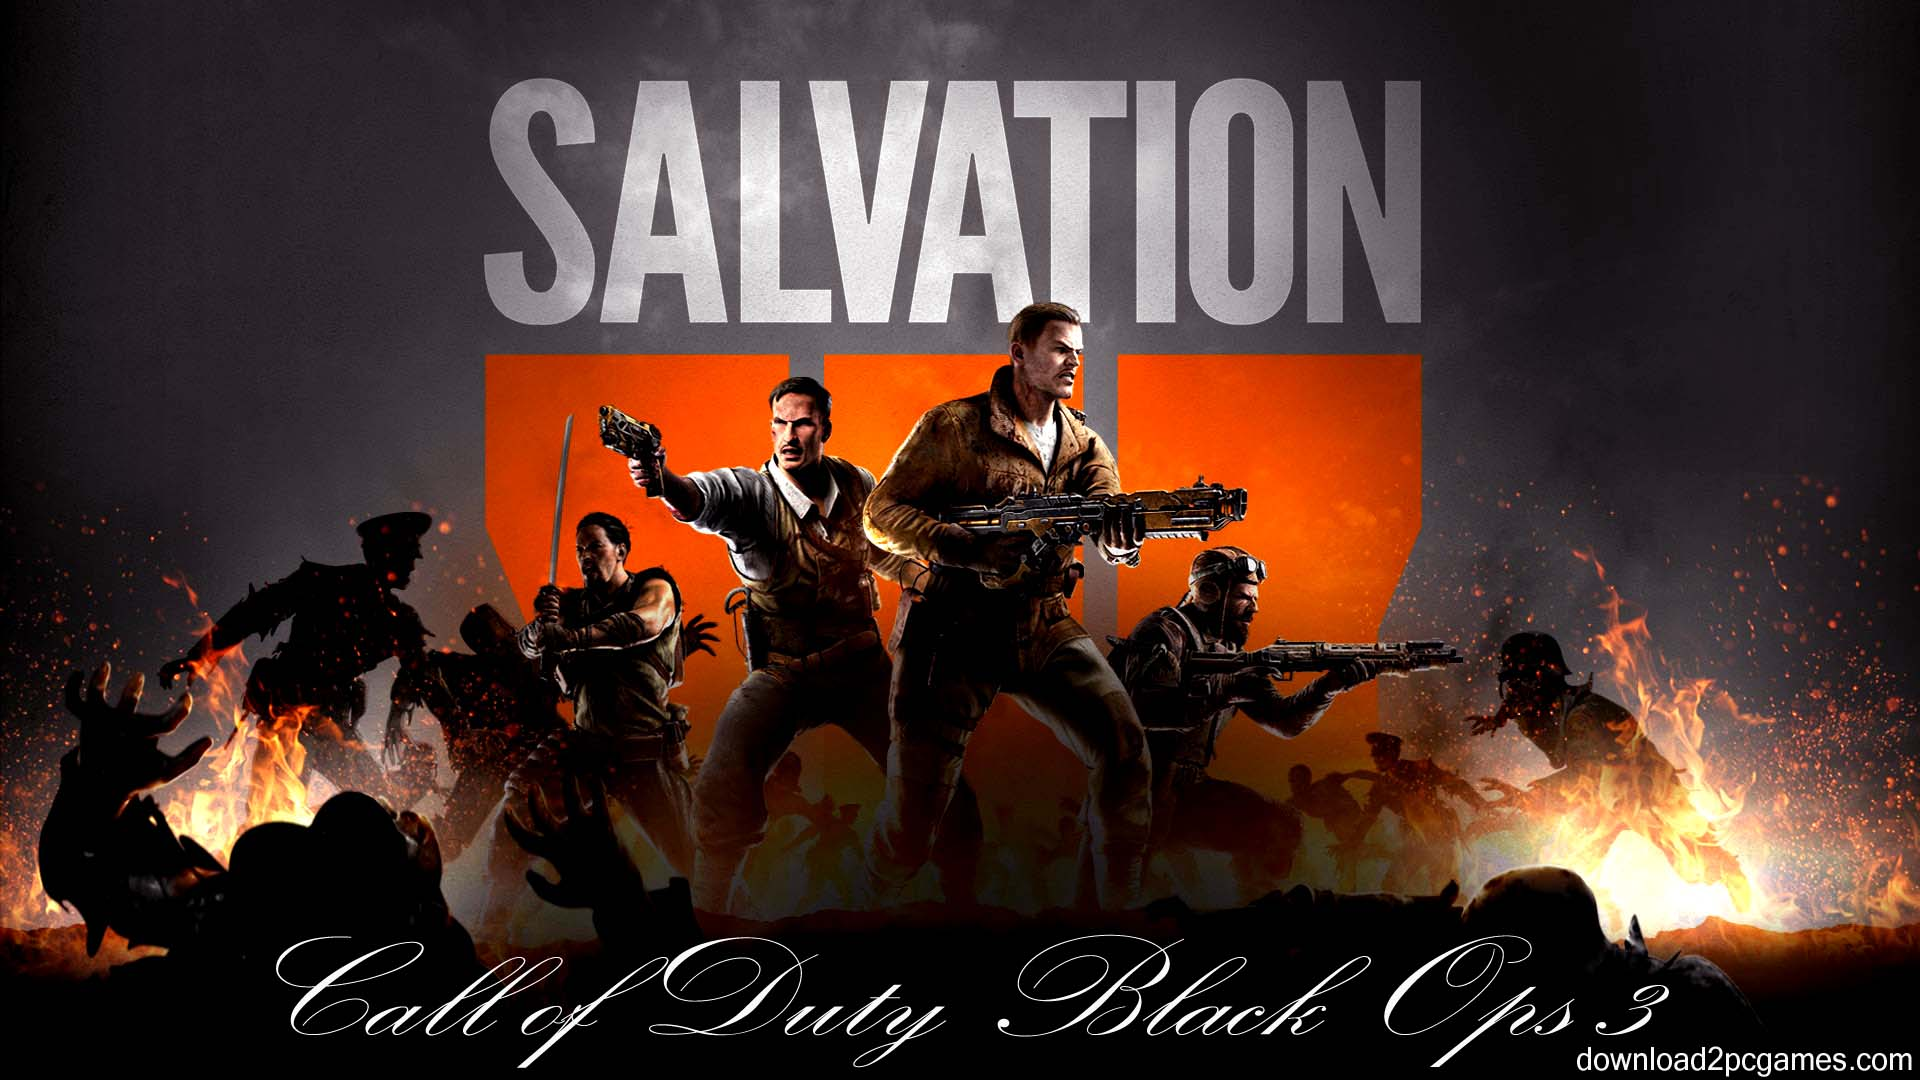 Call of Duty Black Ops 3 Salvation PC Game Free Download - Reloaded